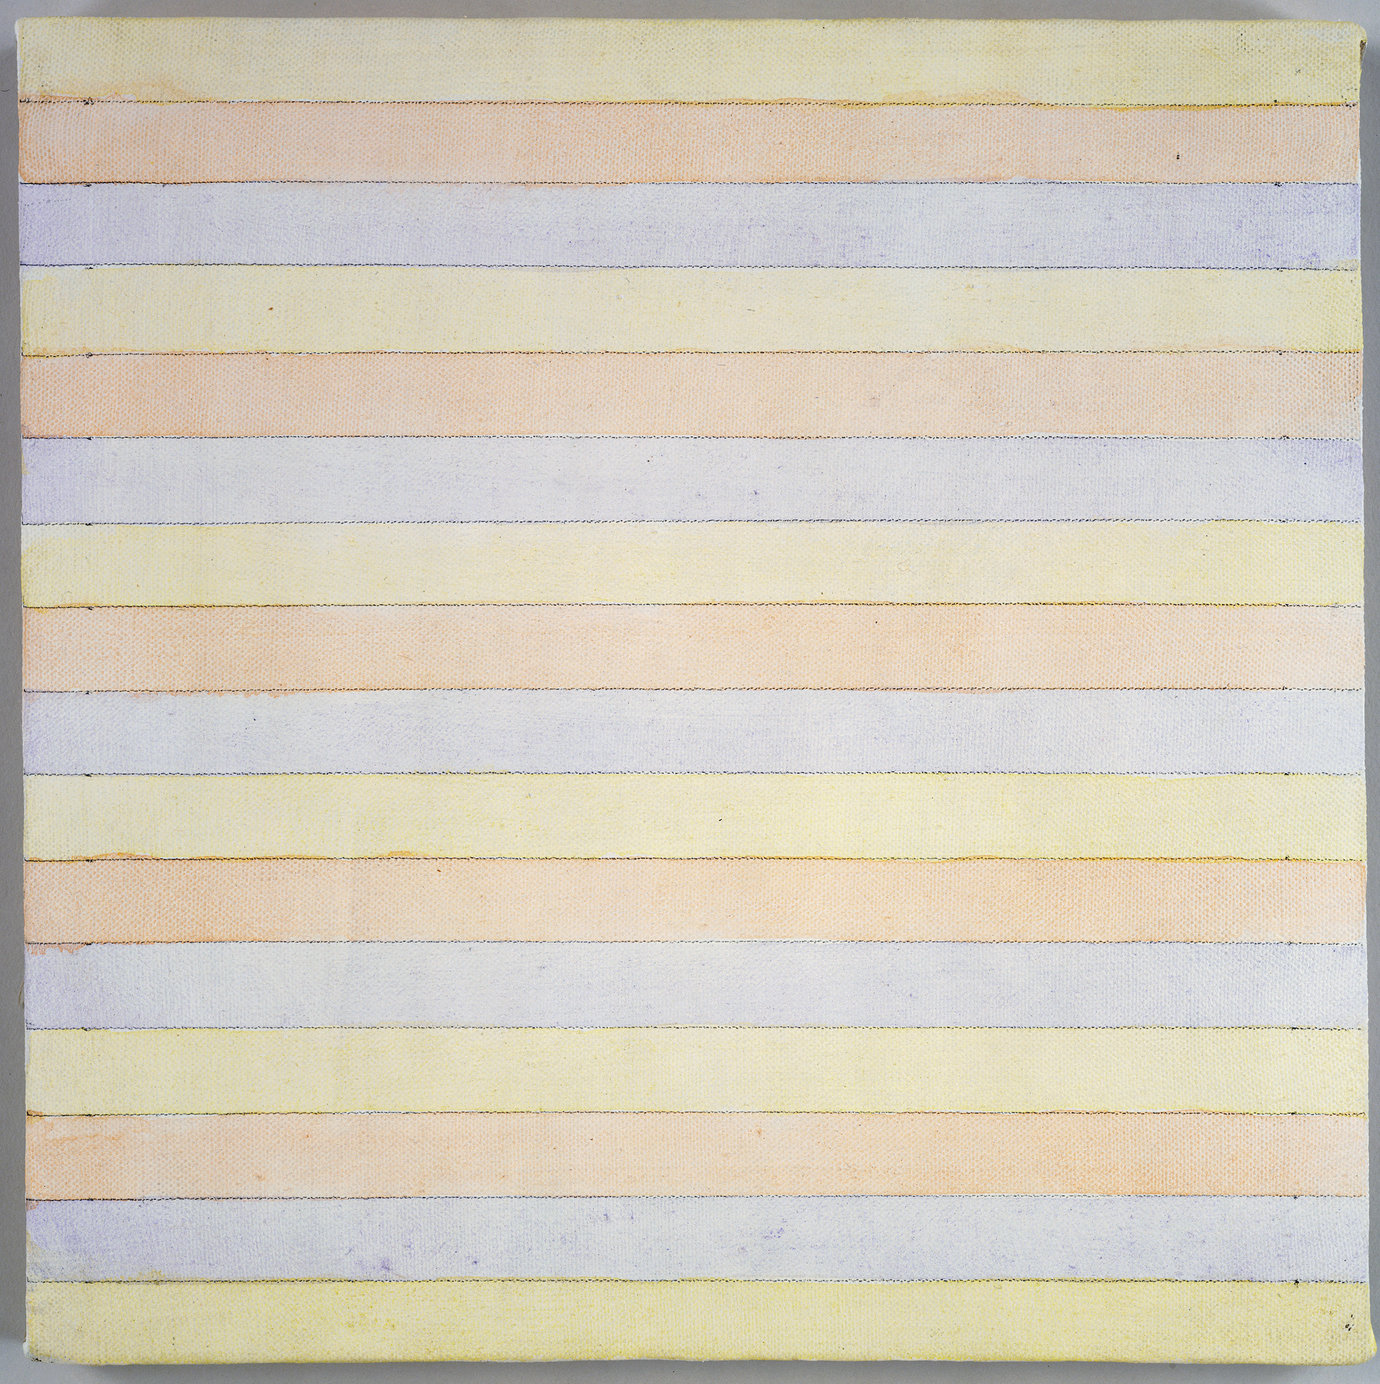 , 1999. acrylic and graphite on linen, 12 x 12 (30.5 x 30.5 cm).